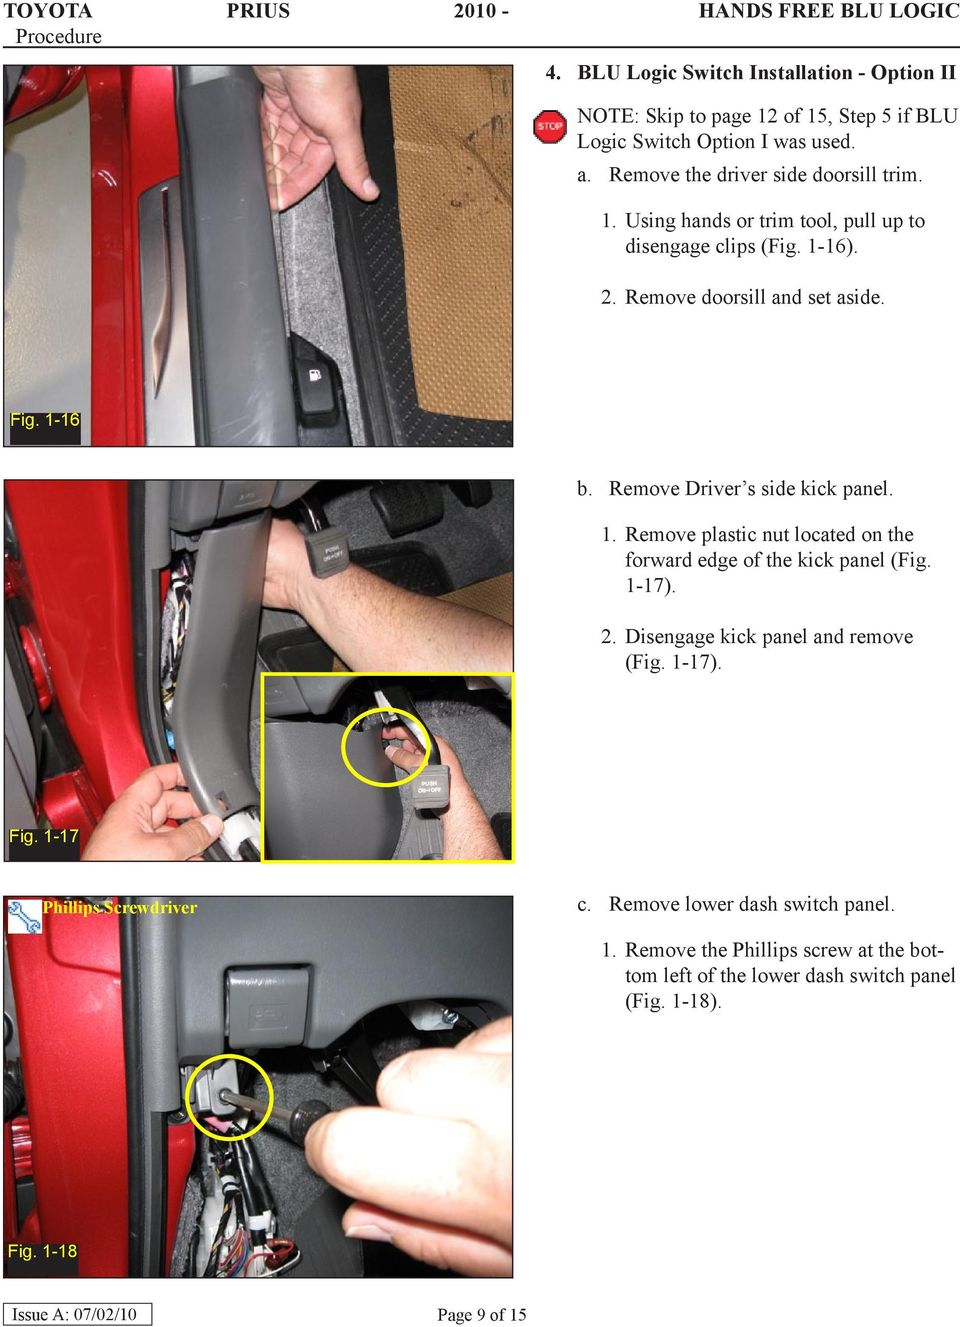 Remove Driver s side kick panel. 1. Remove plastic nut located on the forward edge of the kick panel (Fig. 1-17). 2. Disengage kick panel and remove (Fig.